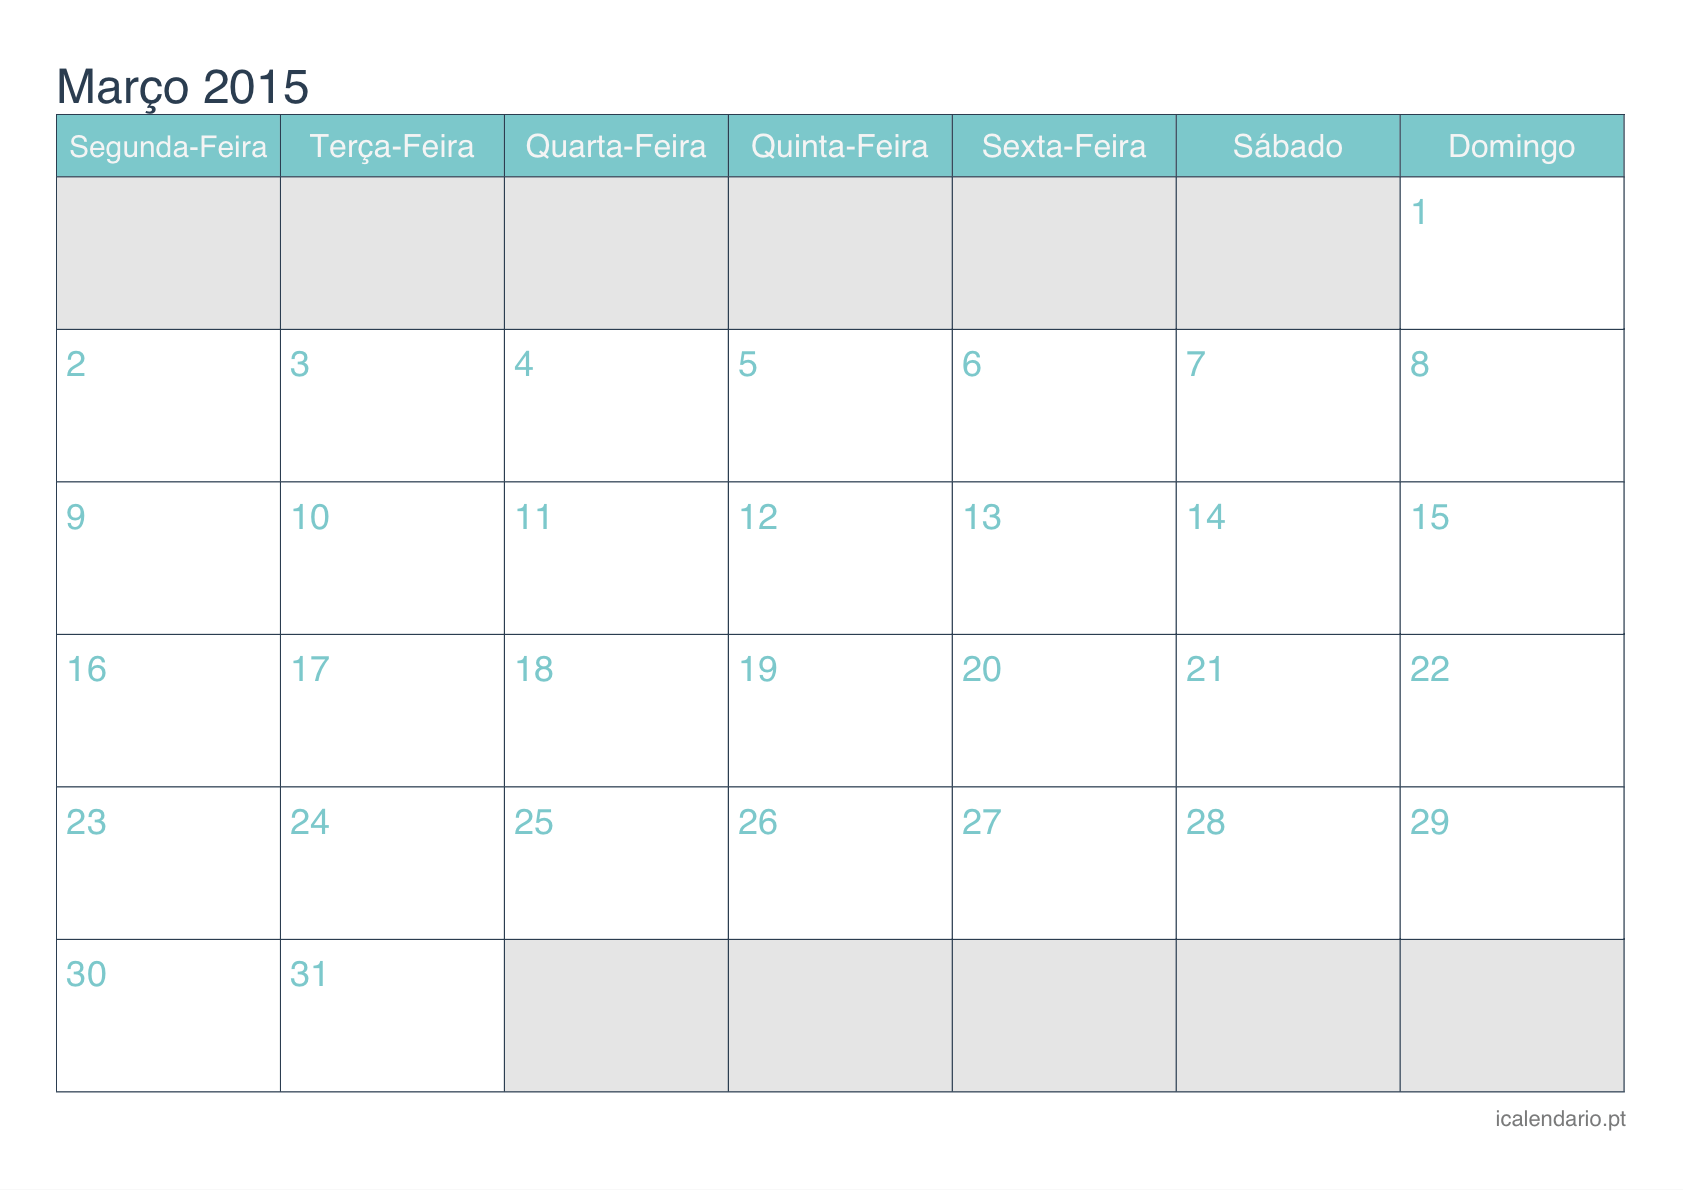 ... 1190 png 24kB, Planing Mensual 2015 Excel | Calendar Template 2016